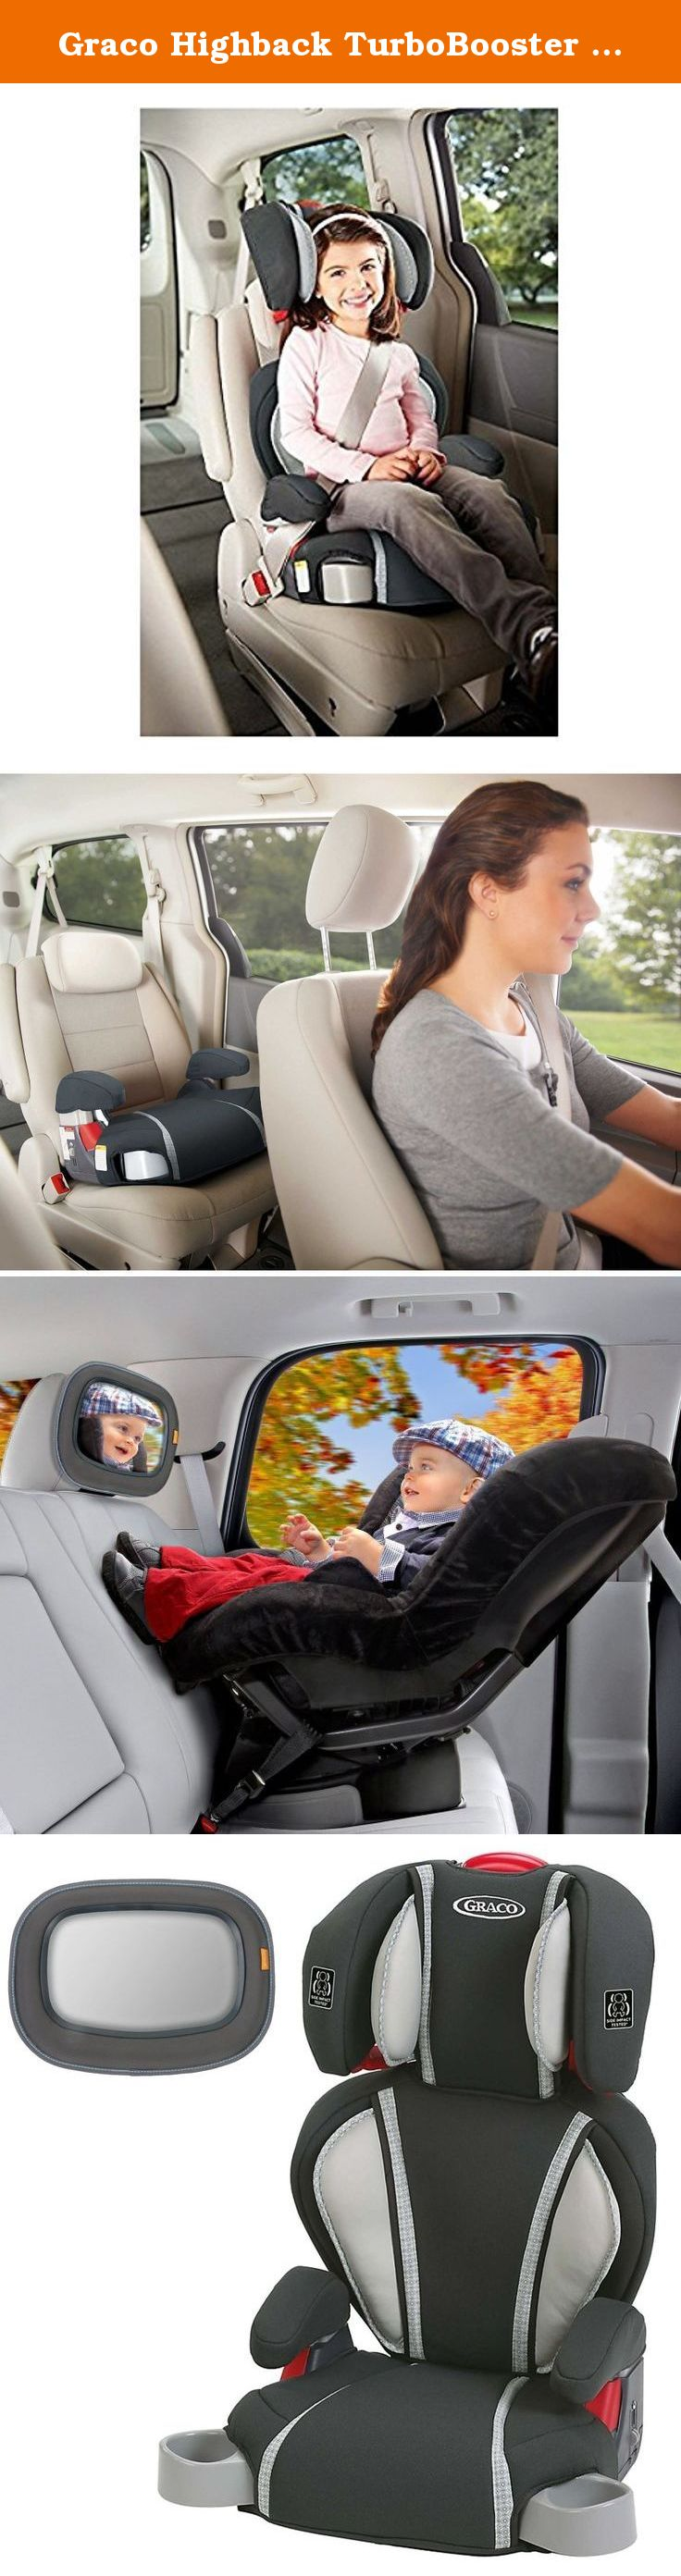 Graco Highback TurboBooster Booster Car Seat Glacier With Baby In Sight Mirror Gracos